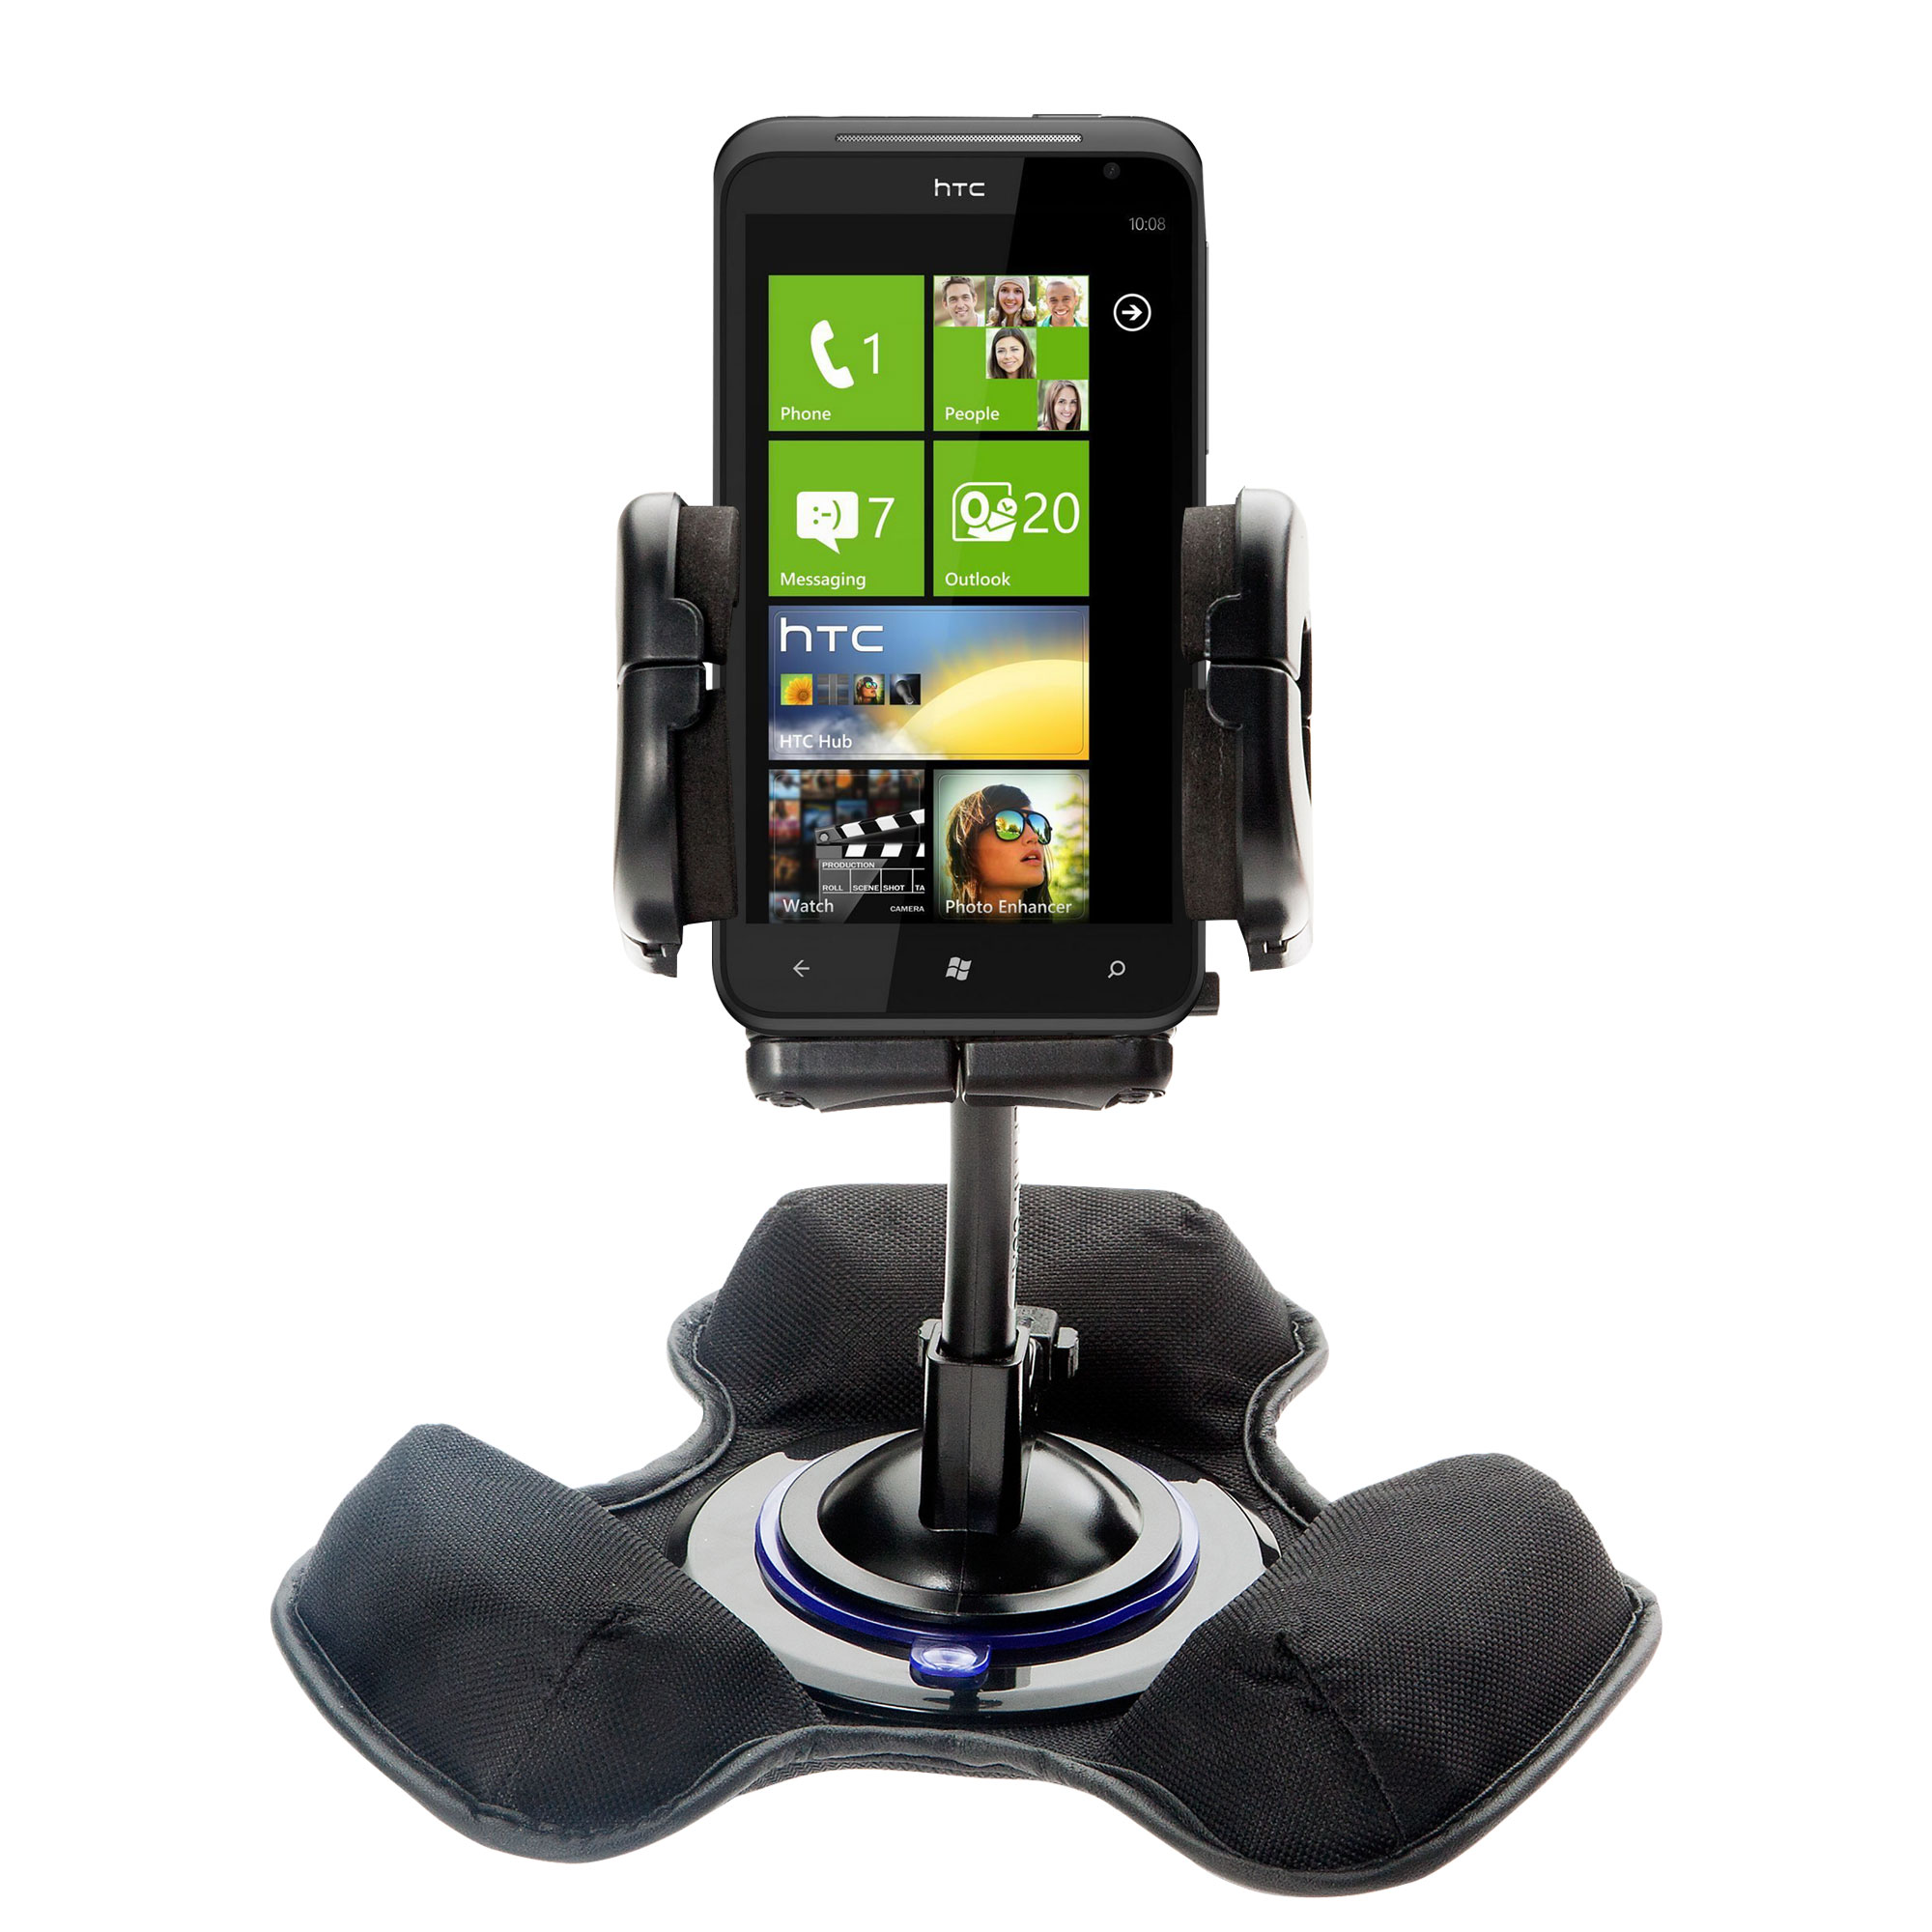 Dash and Windshield Holder compatible with the HTC Eternity